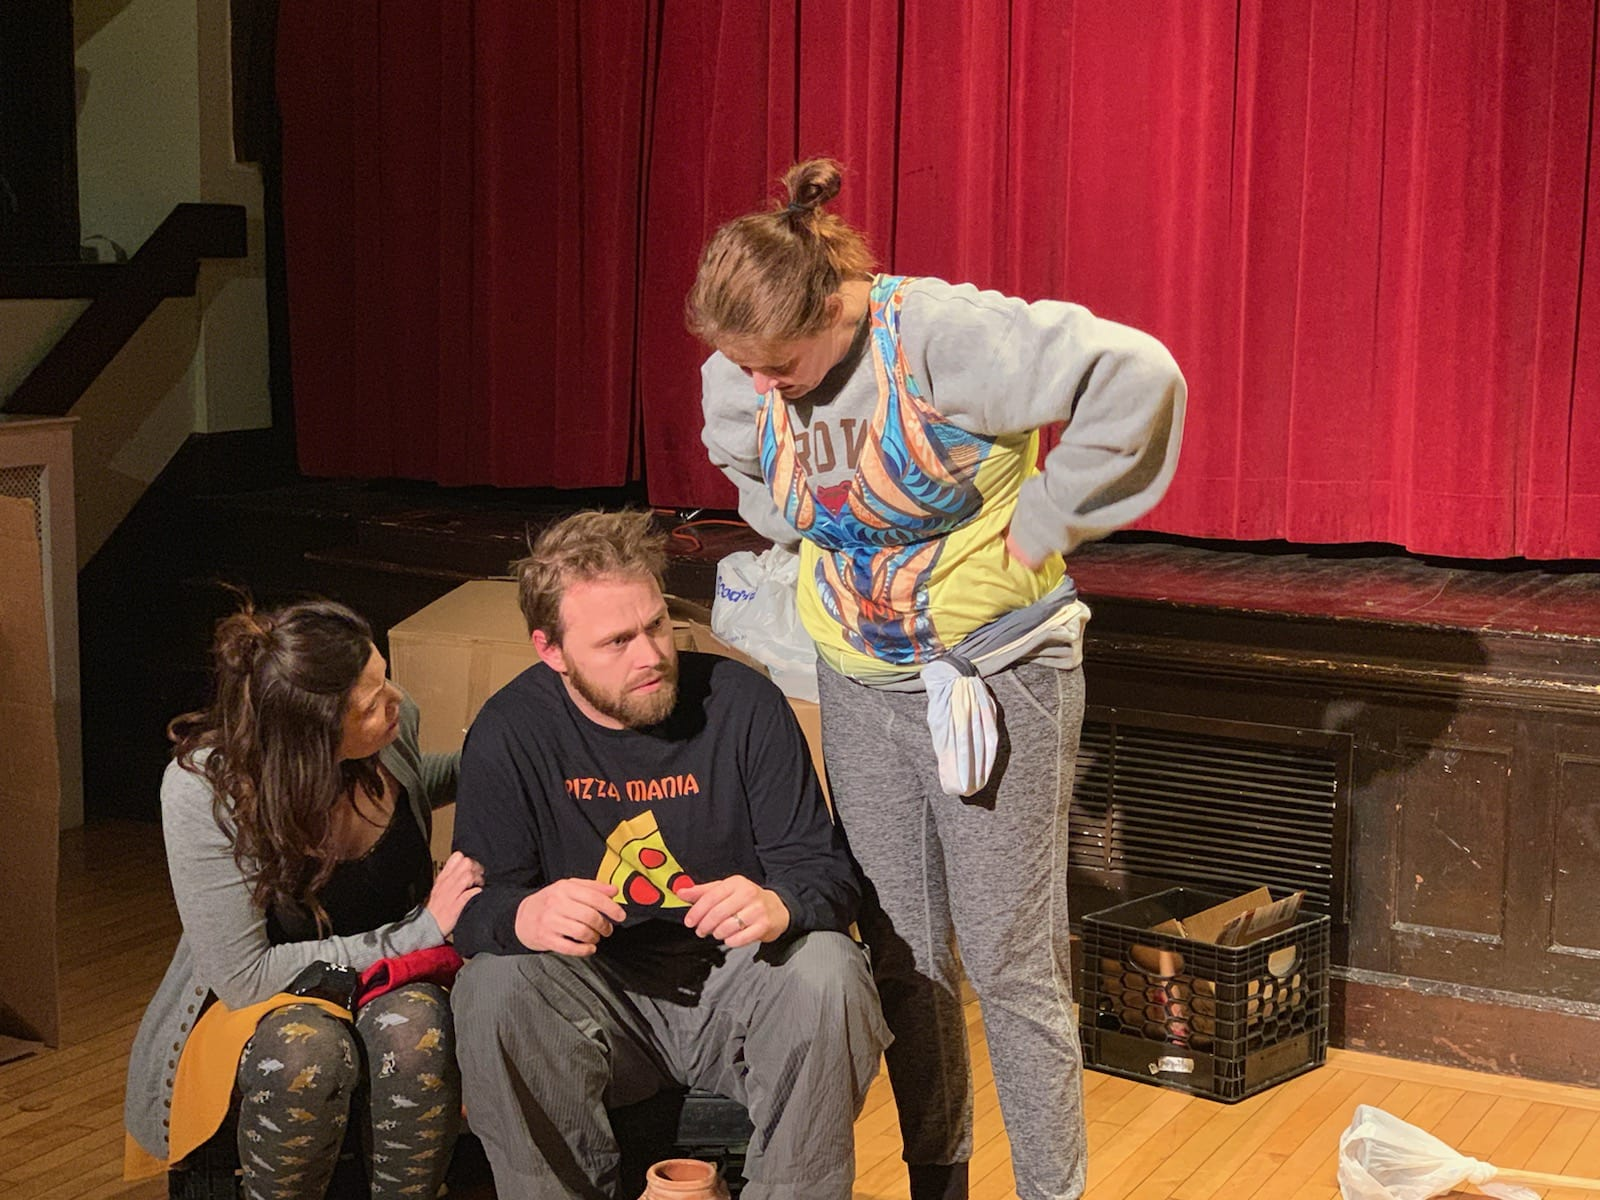 Jessie Burns (Rose), Andrew Farms (Cliff), and Sarah Akers (Emily) in 'The Value of Moscow.' Photo credit: Arianne' Warner.